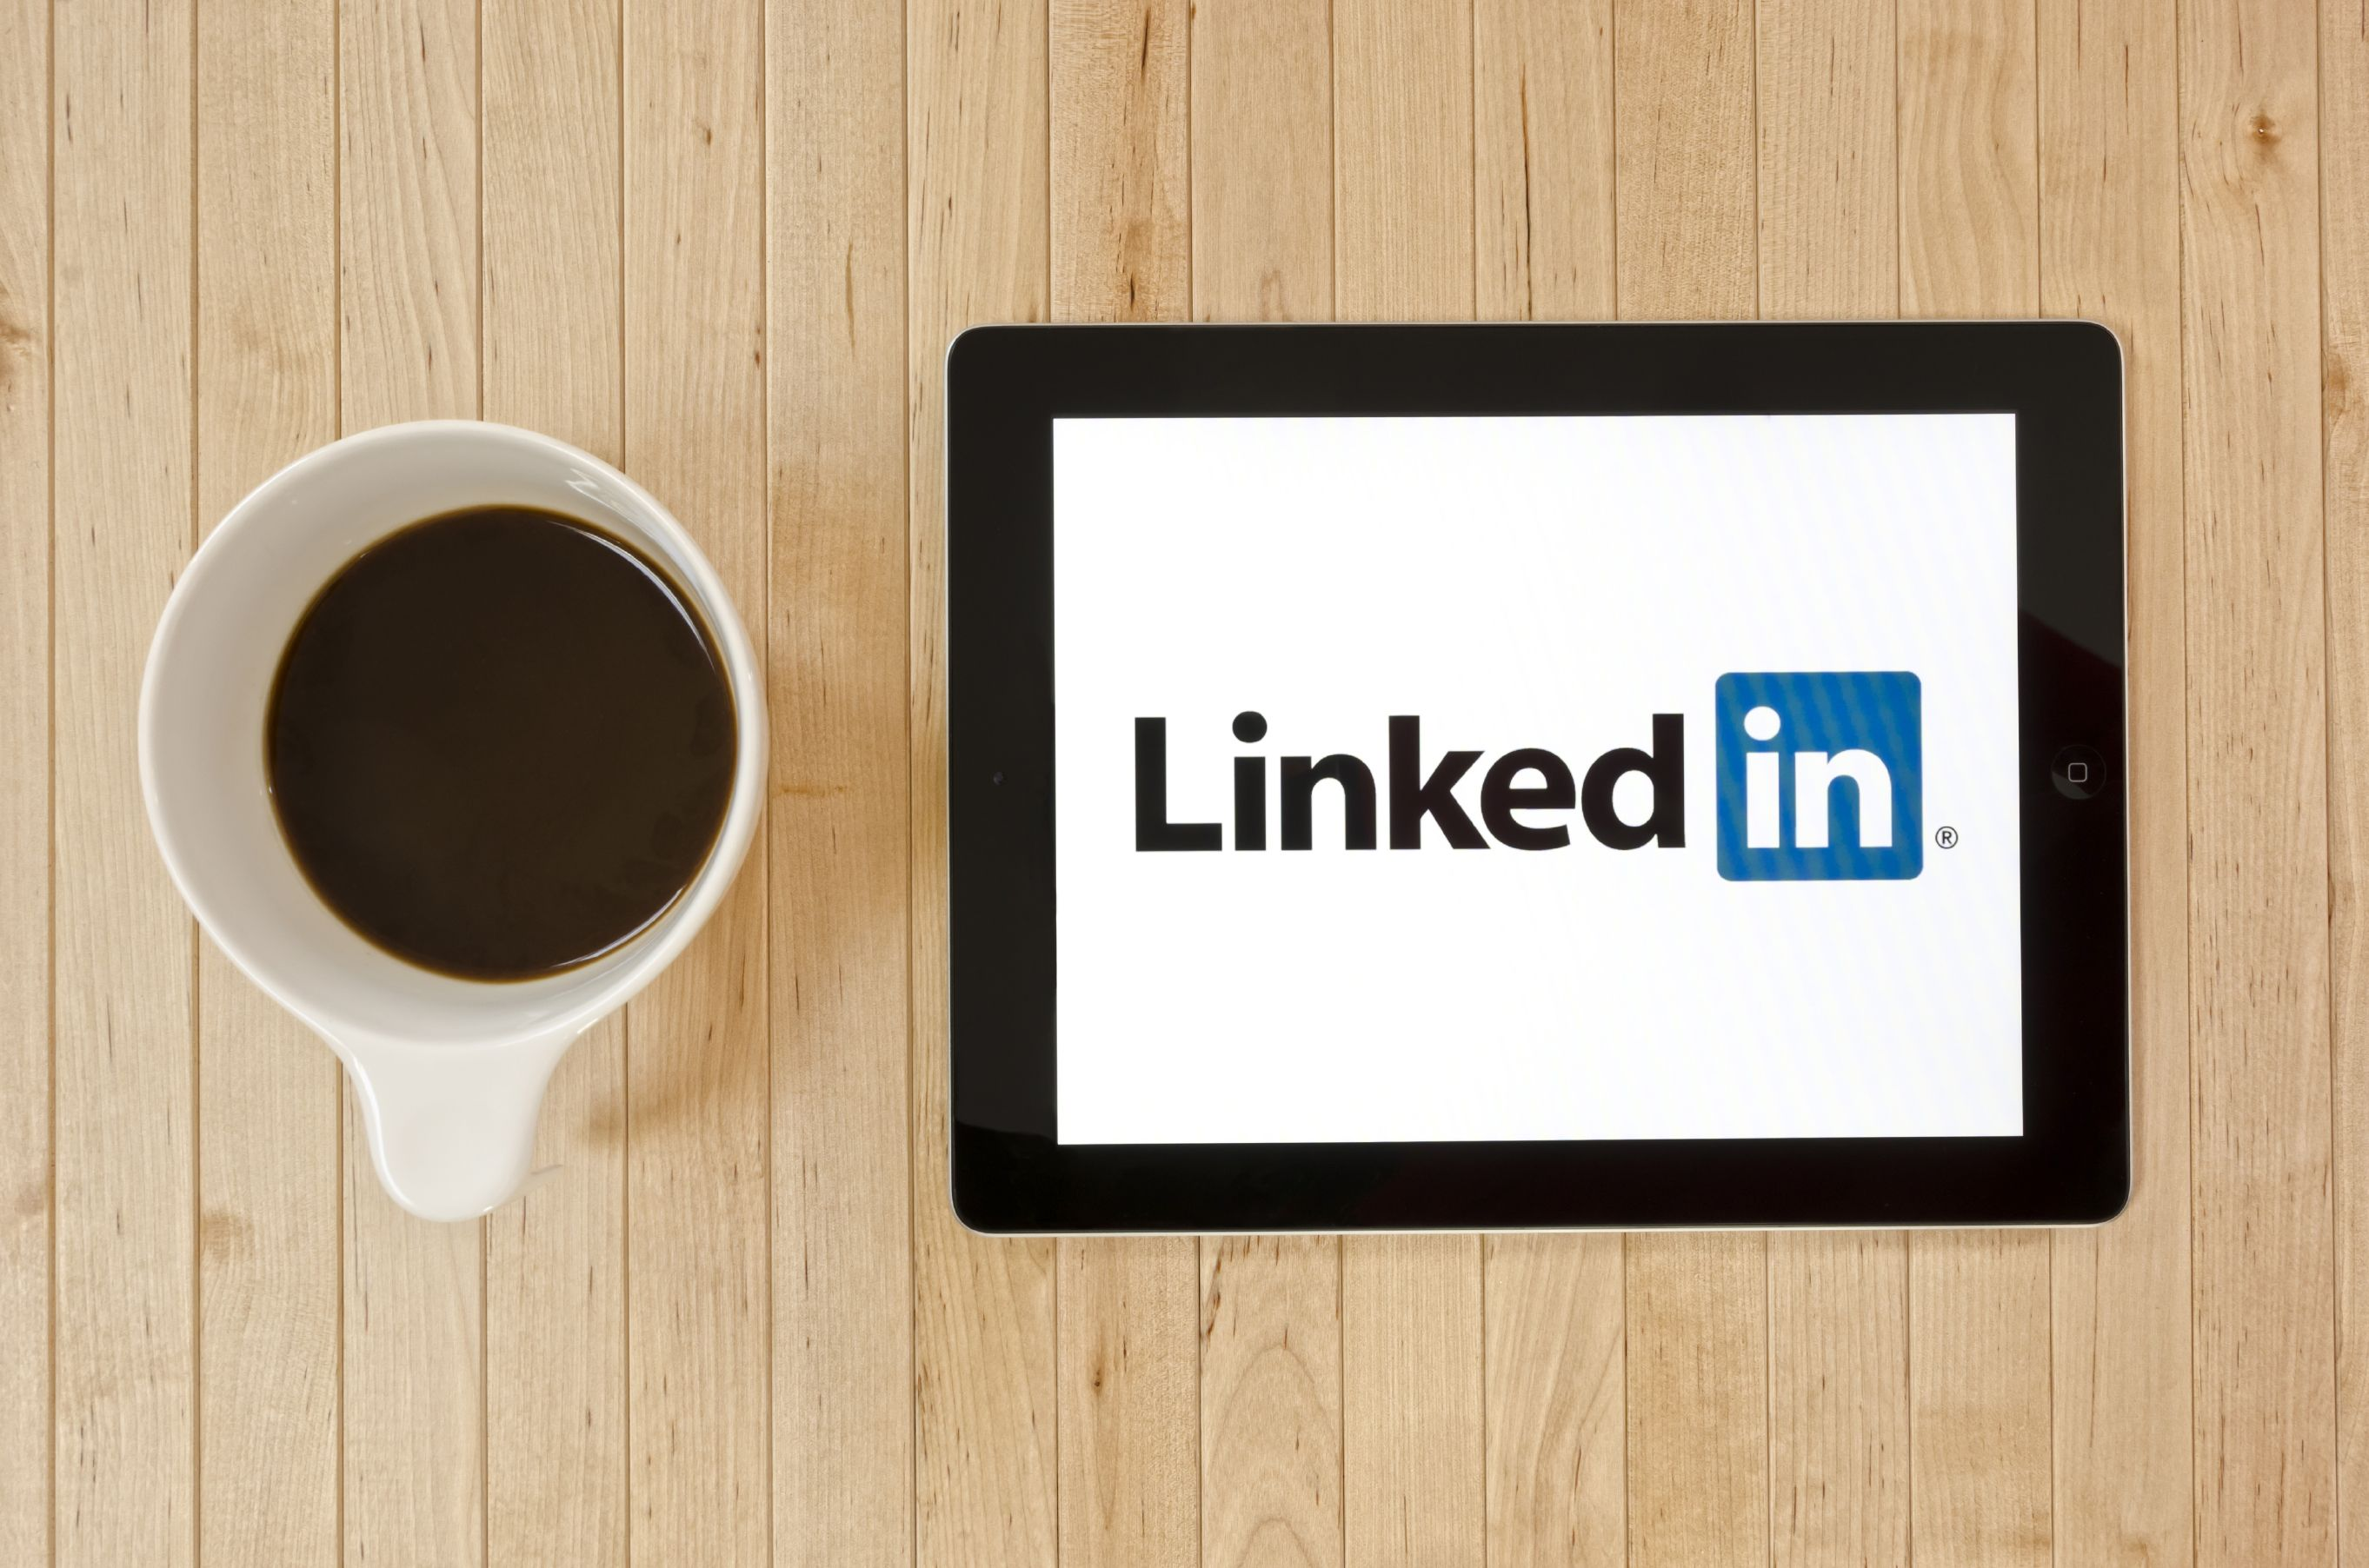 Using LinkedIn as a leverage for your business